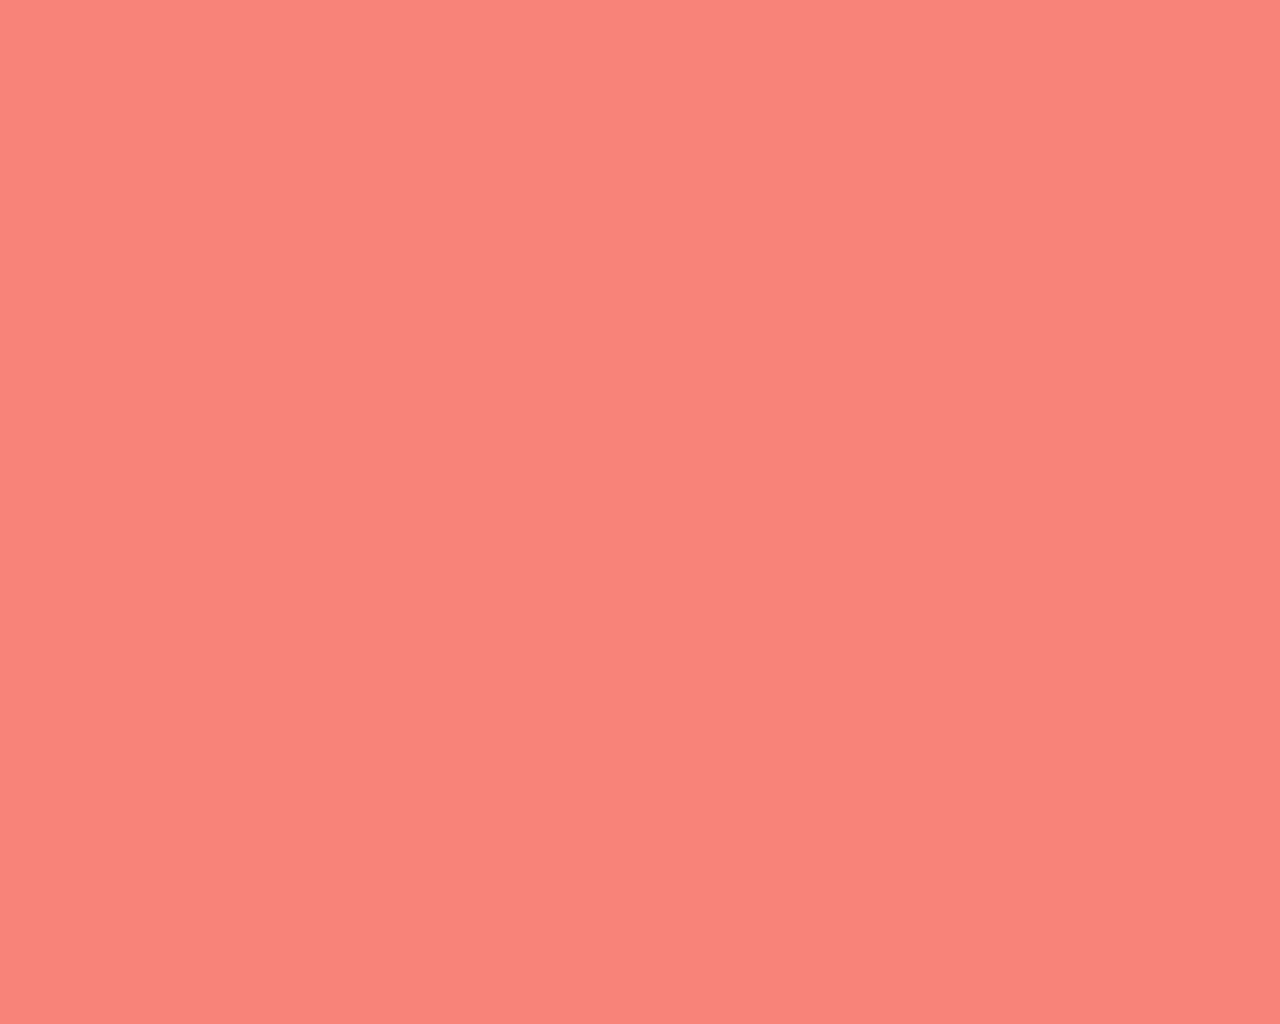 plain coral pink color background design a nice warm shade of pink 1280x1024